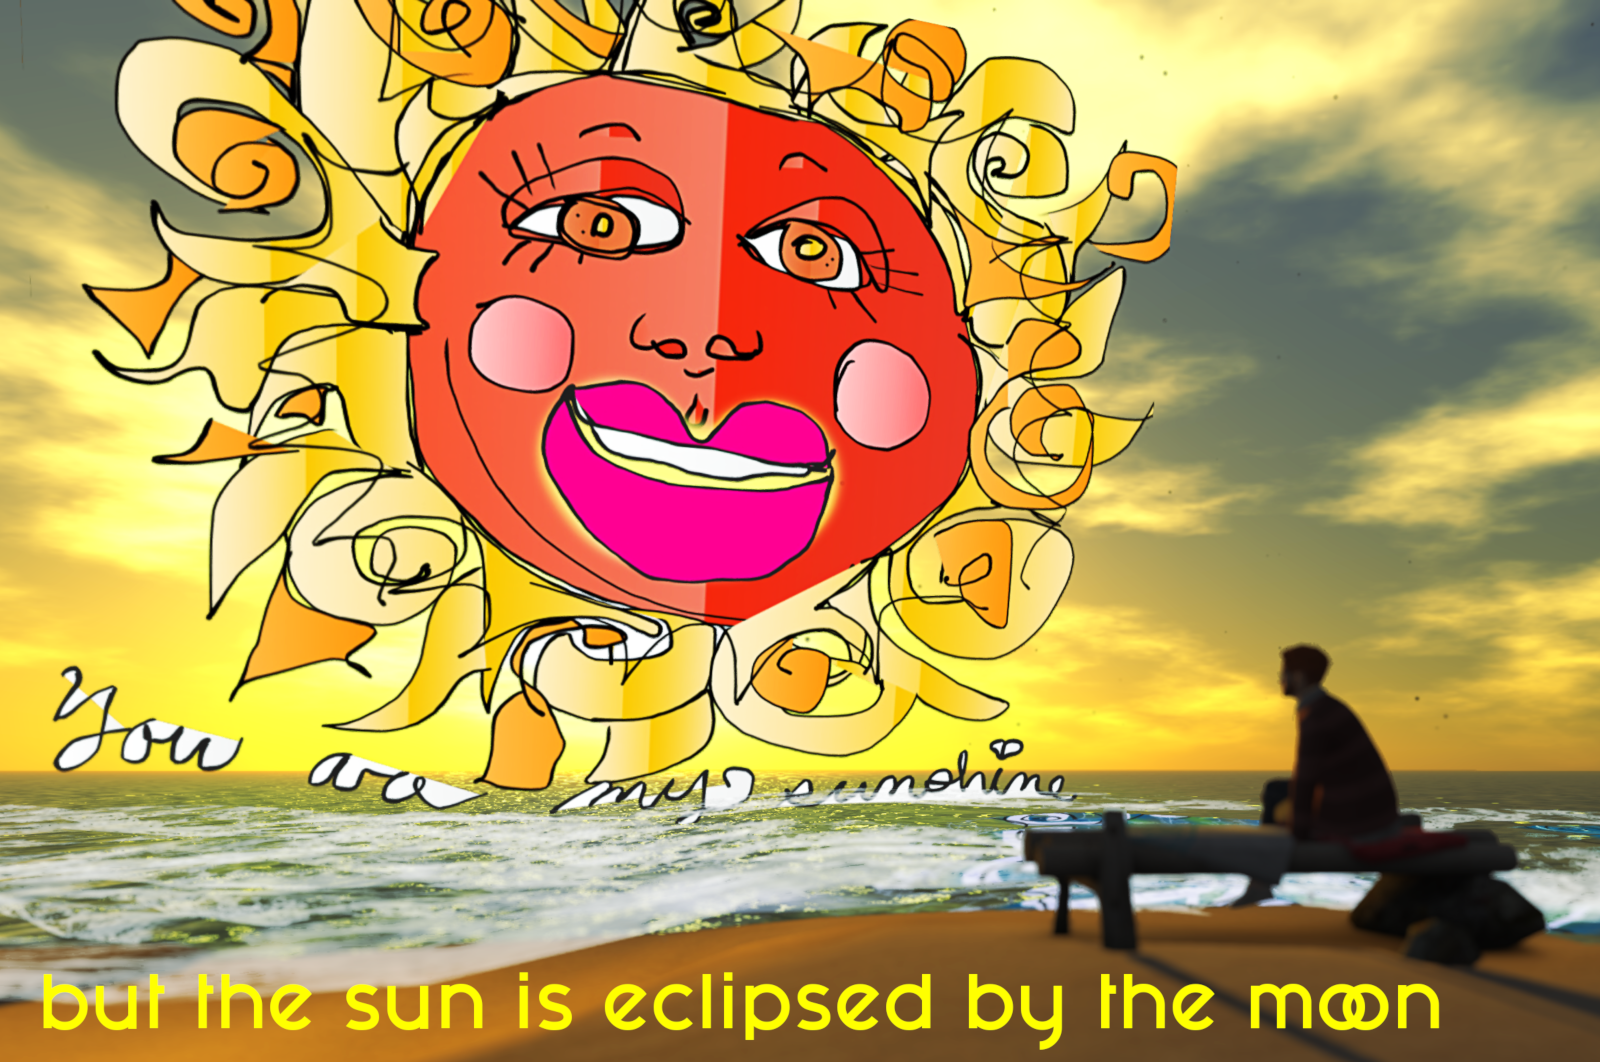 But the sun is eclipsed by the moon (by Ricco Saenz)